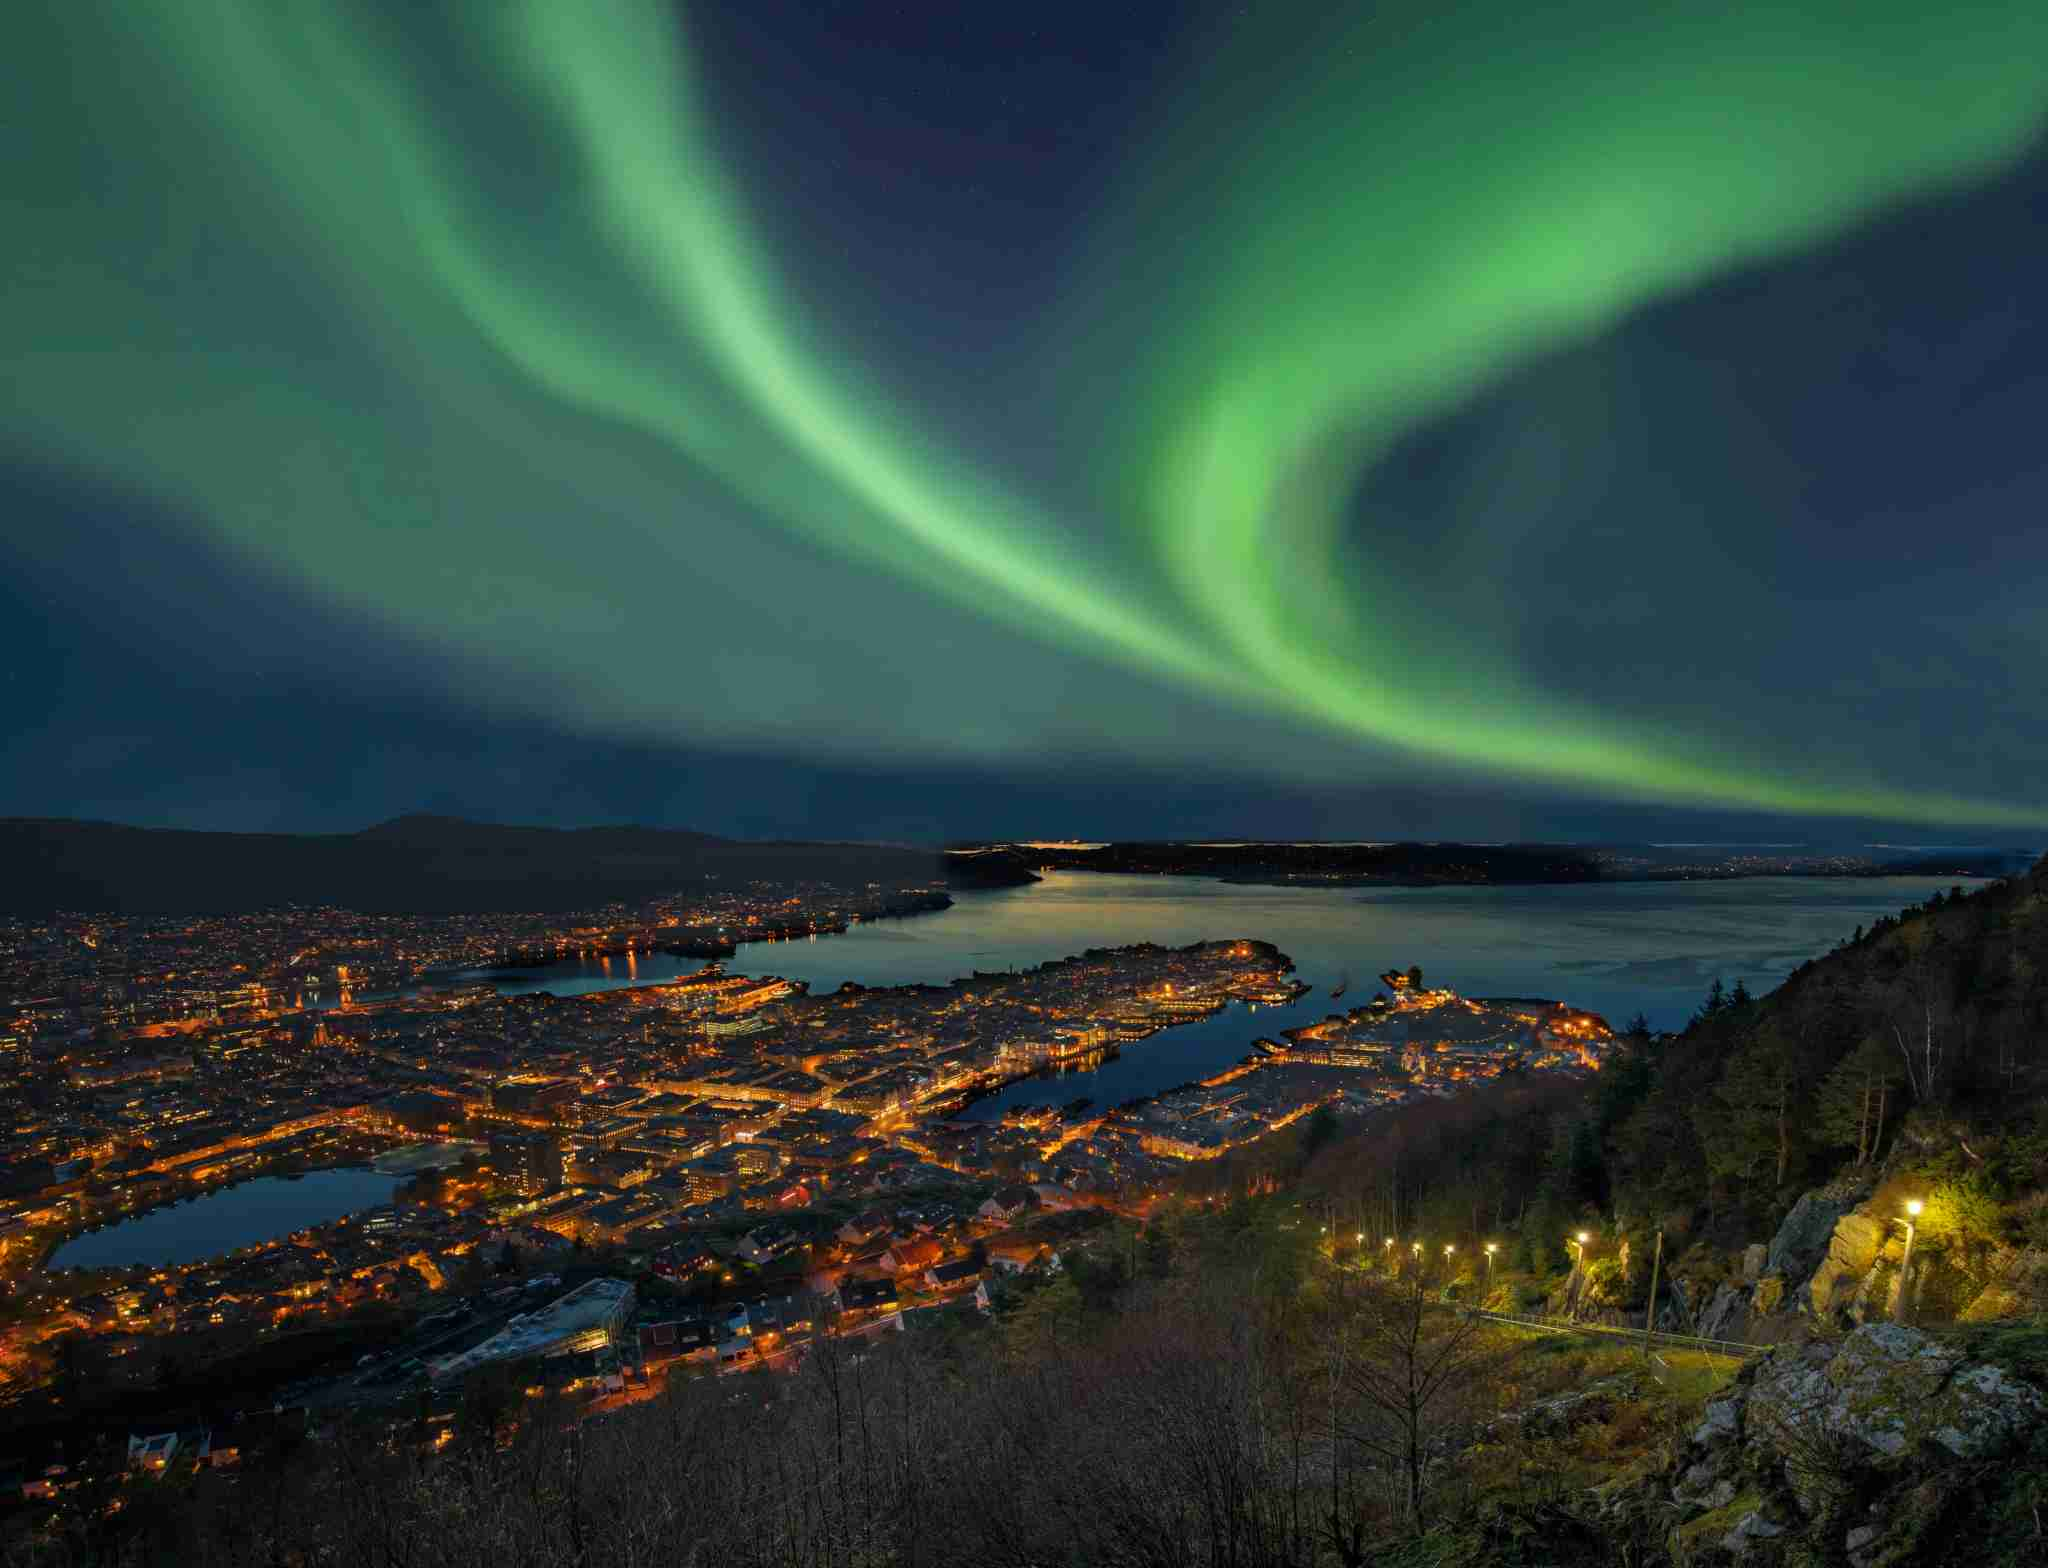 The Northern Lights over harbor of Bergen City, Norway. Image by RelaxFoto.de / Getty Image.